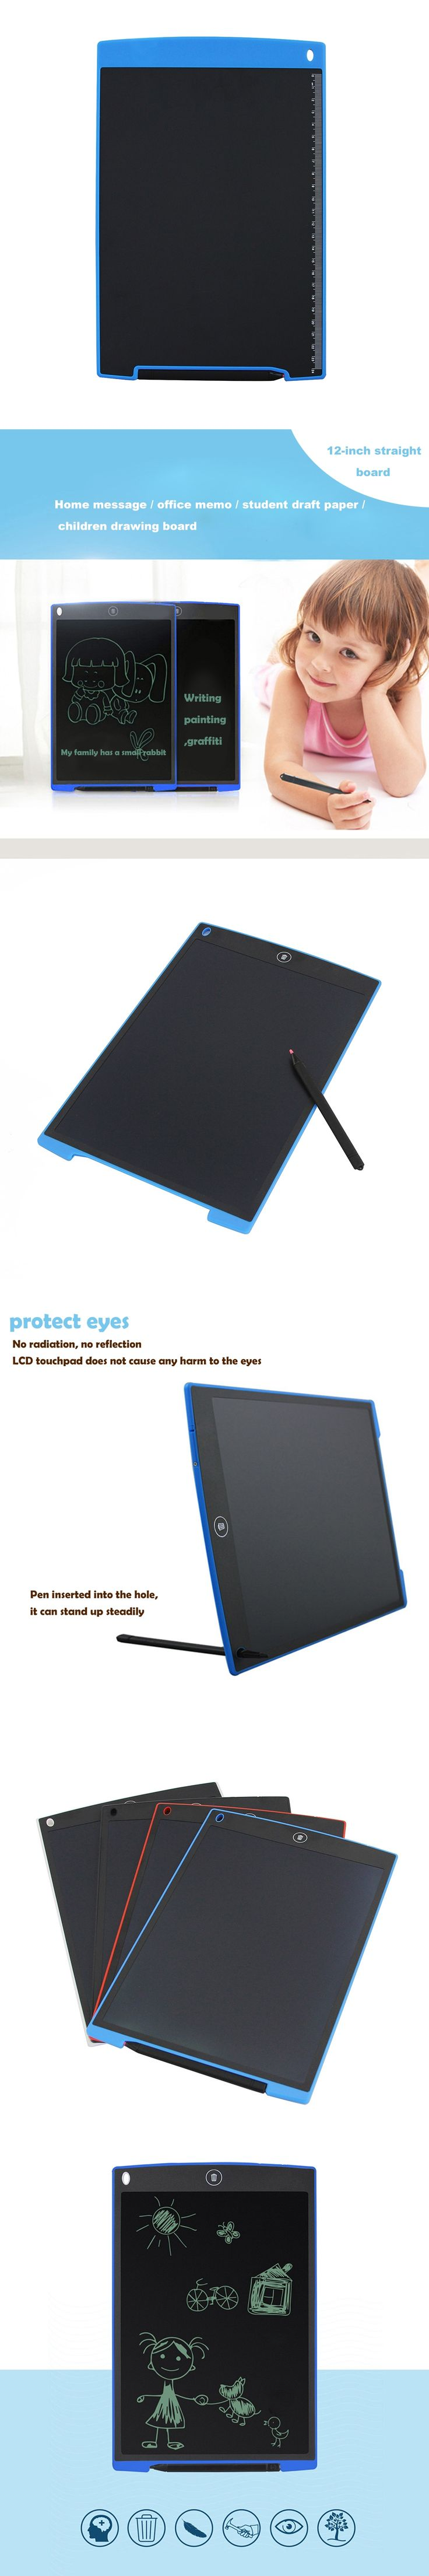 LCD Handwriting Tablet Pads LCD Writing Tablet Digital Drawing Board Digital Electronic Tablet Board Included Button Cell